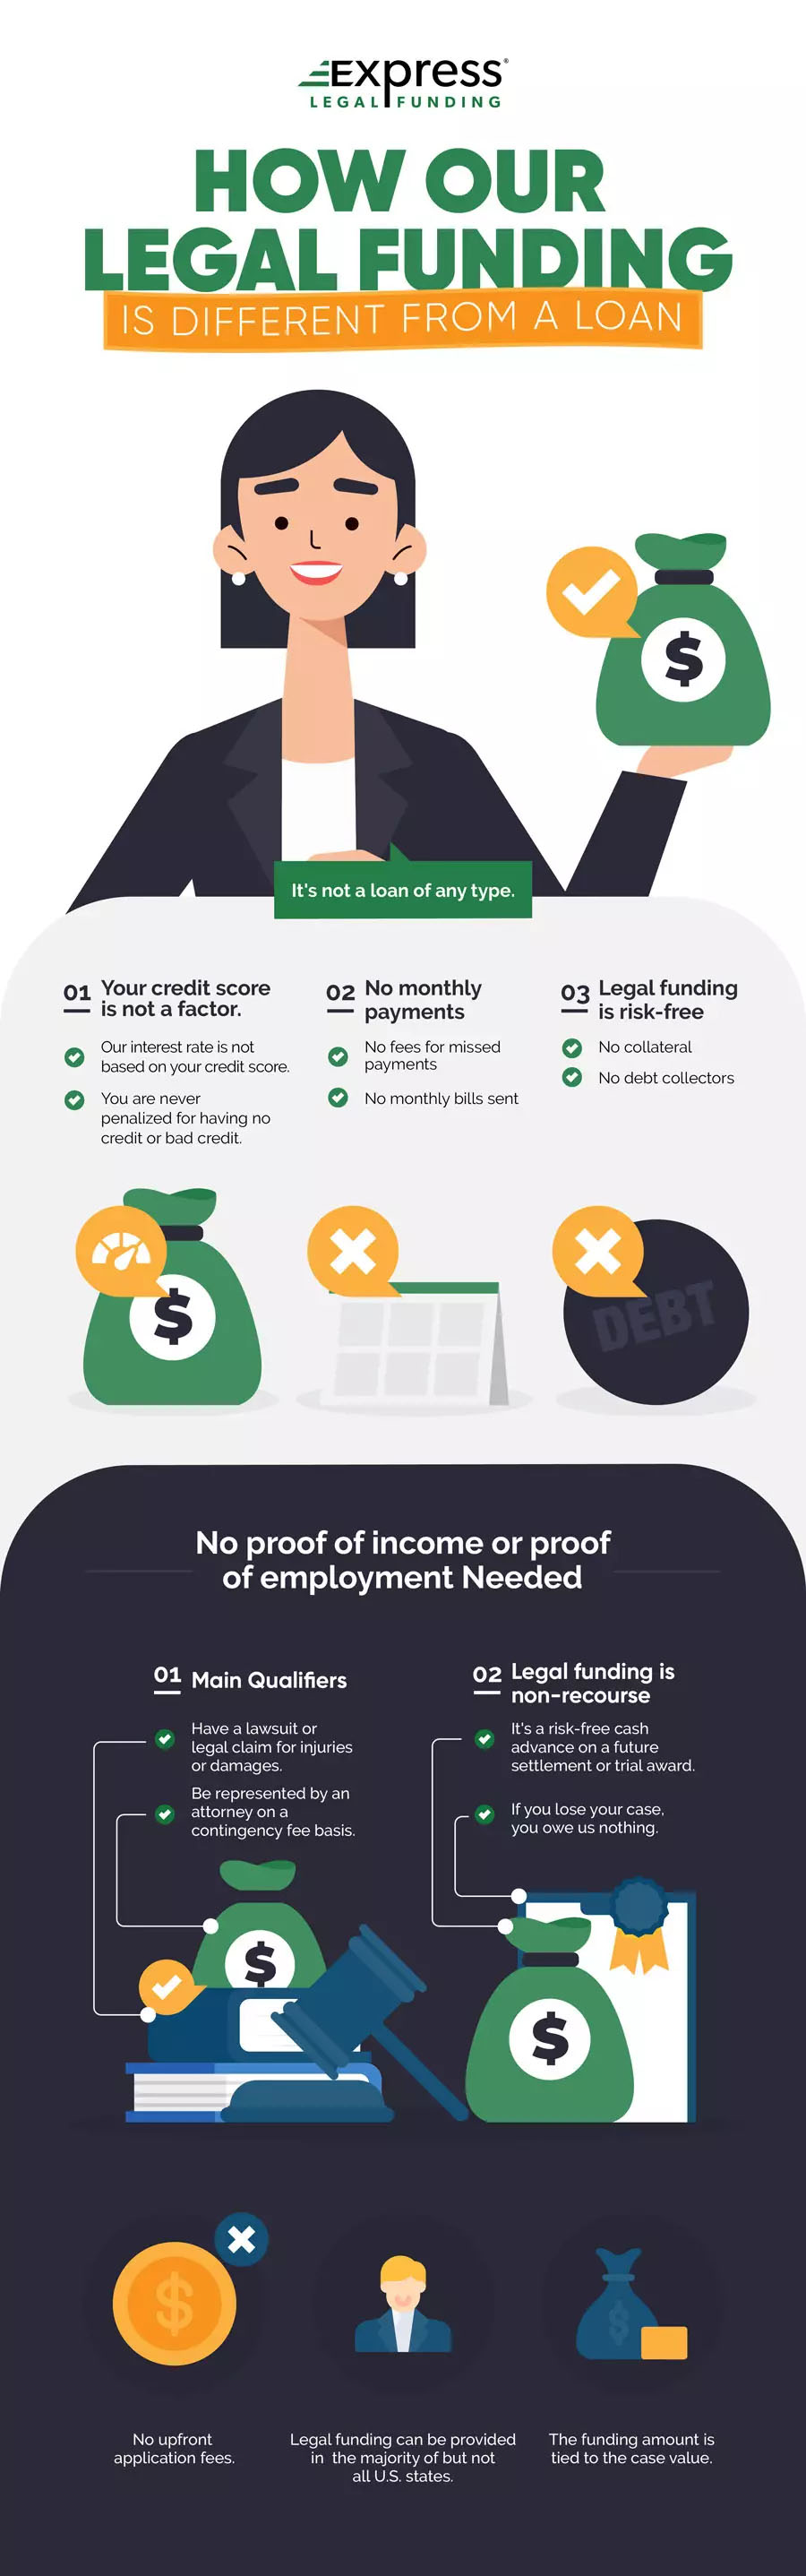 What is Legal Funding?